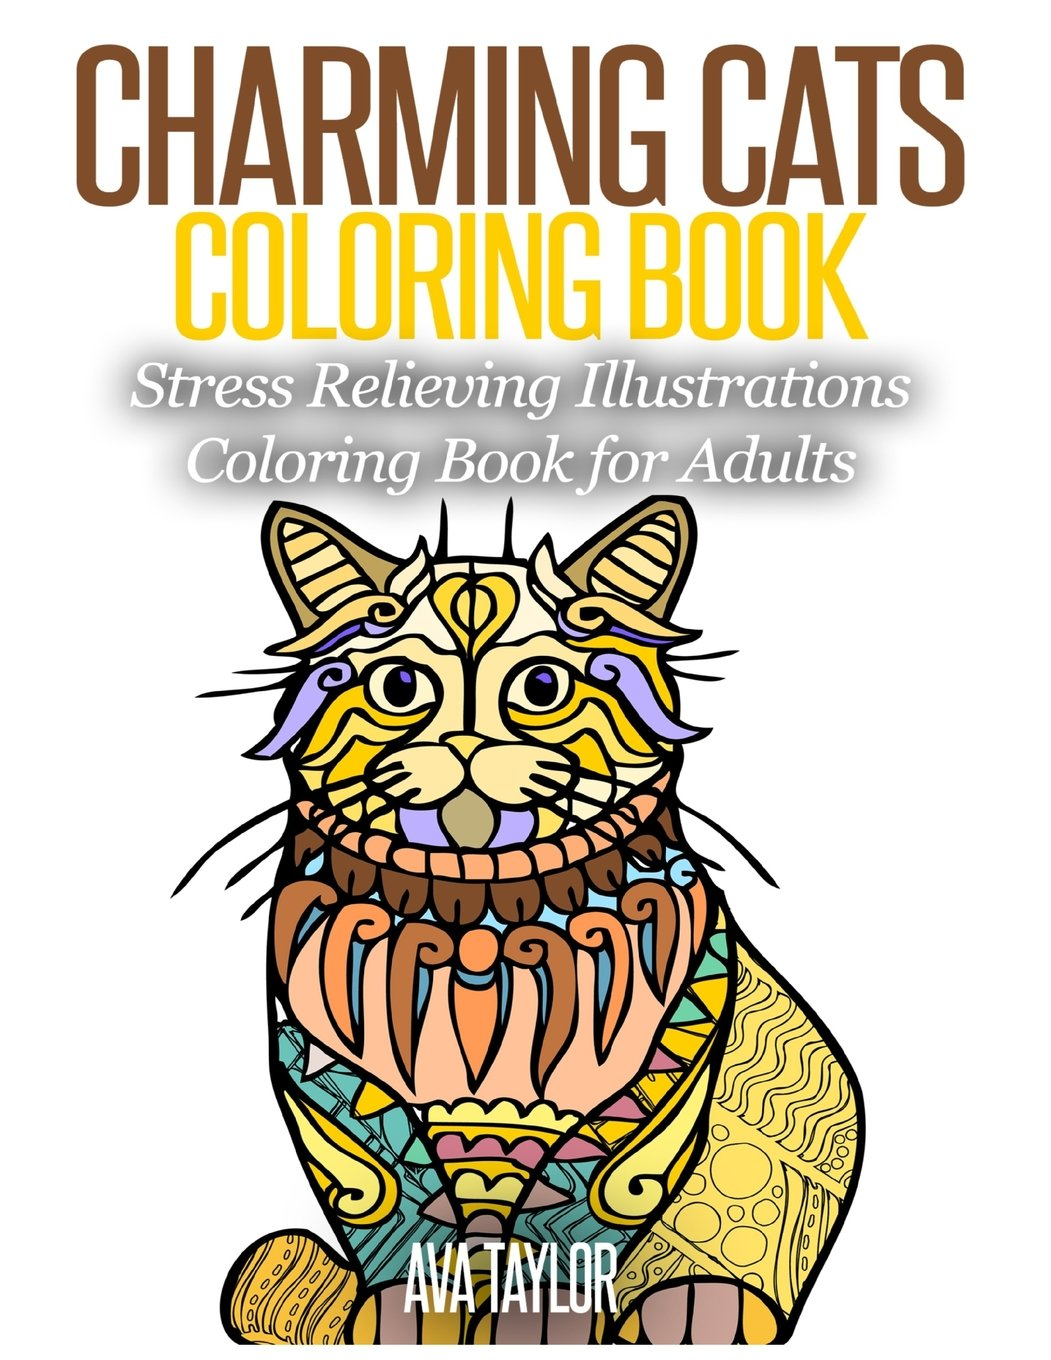 Stress relieving cats coloring - Amazon Com Charming Cats Coloring Book Stress Relieving Illustrations Coloring Book For Adults 9781517310288 Ava Taylor Lovink Coloring Books Books